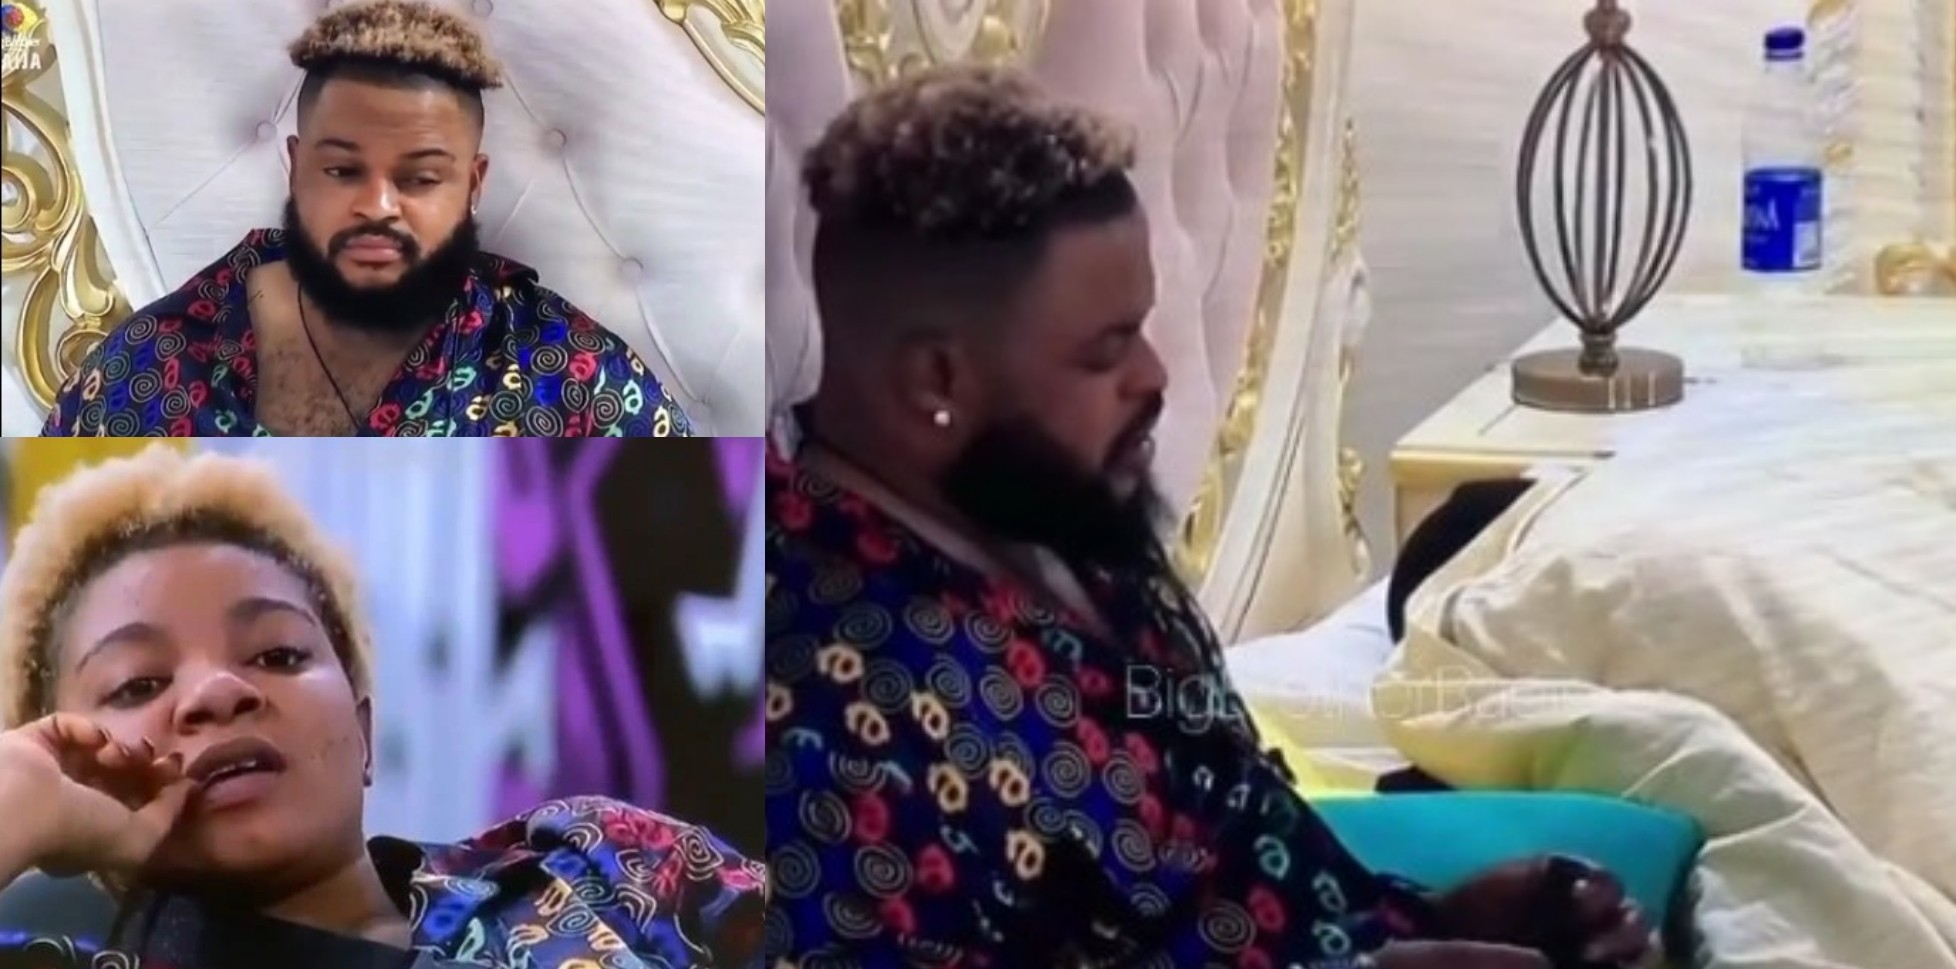 VIDEO: WhiteMoney Furious With Queen Over Her Plans To Sle€p With Him And Cross